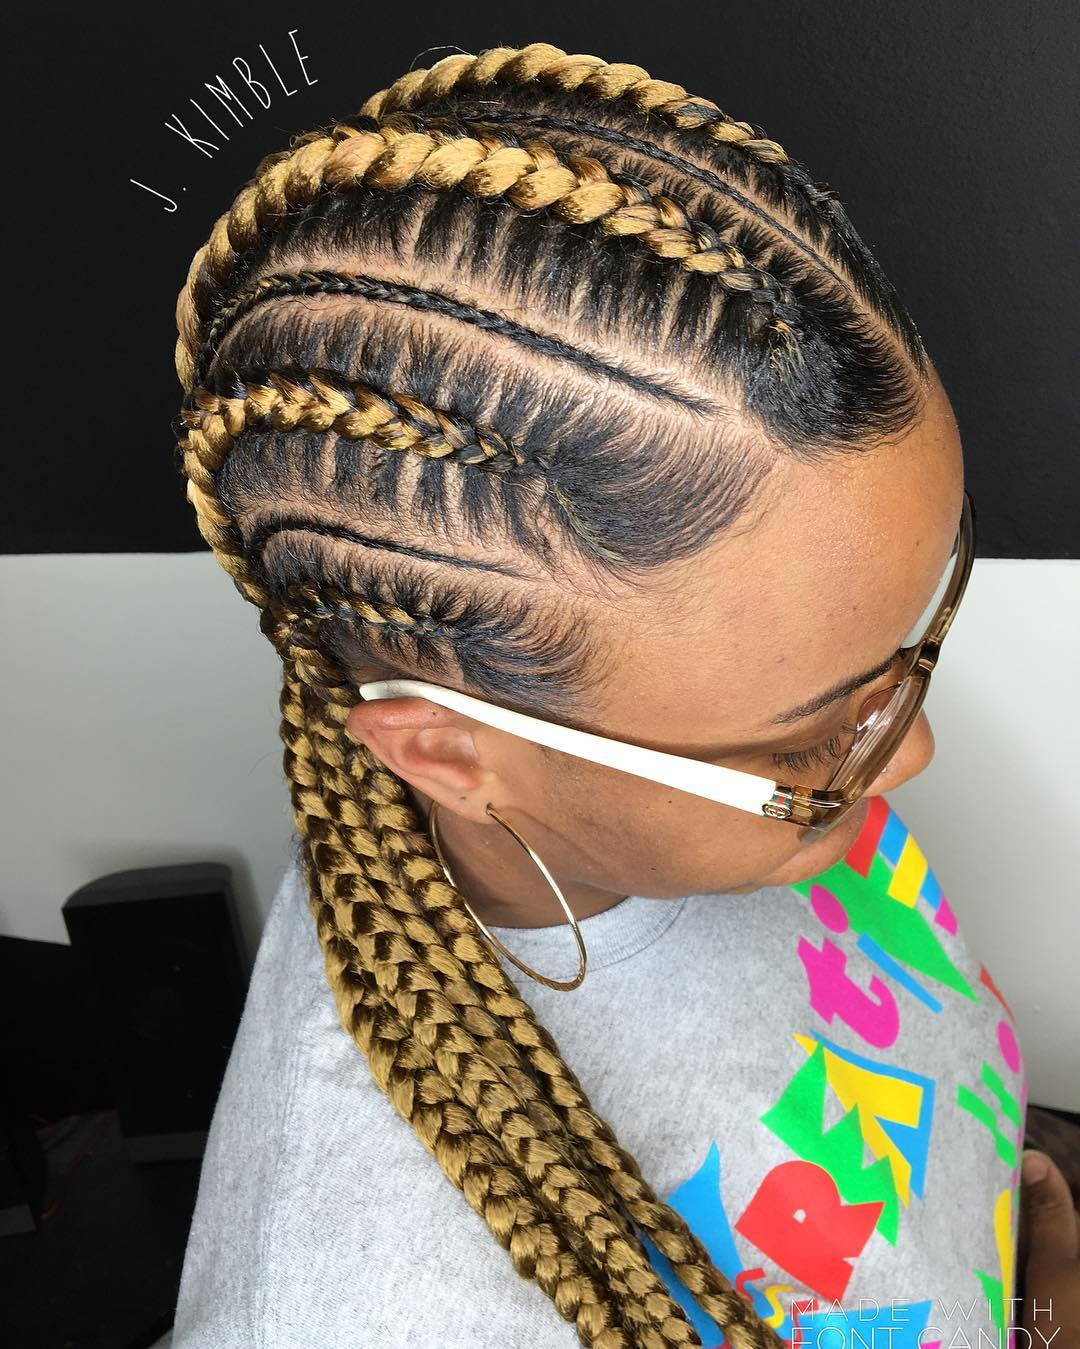 Surprising 70 Best Black Braided Hairstyles That Turn Heads In 2017 Short Hairstyles For Black Women Fulllsitofus